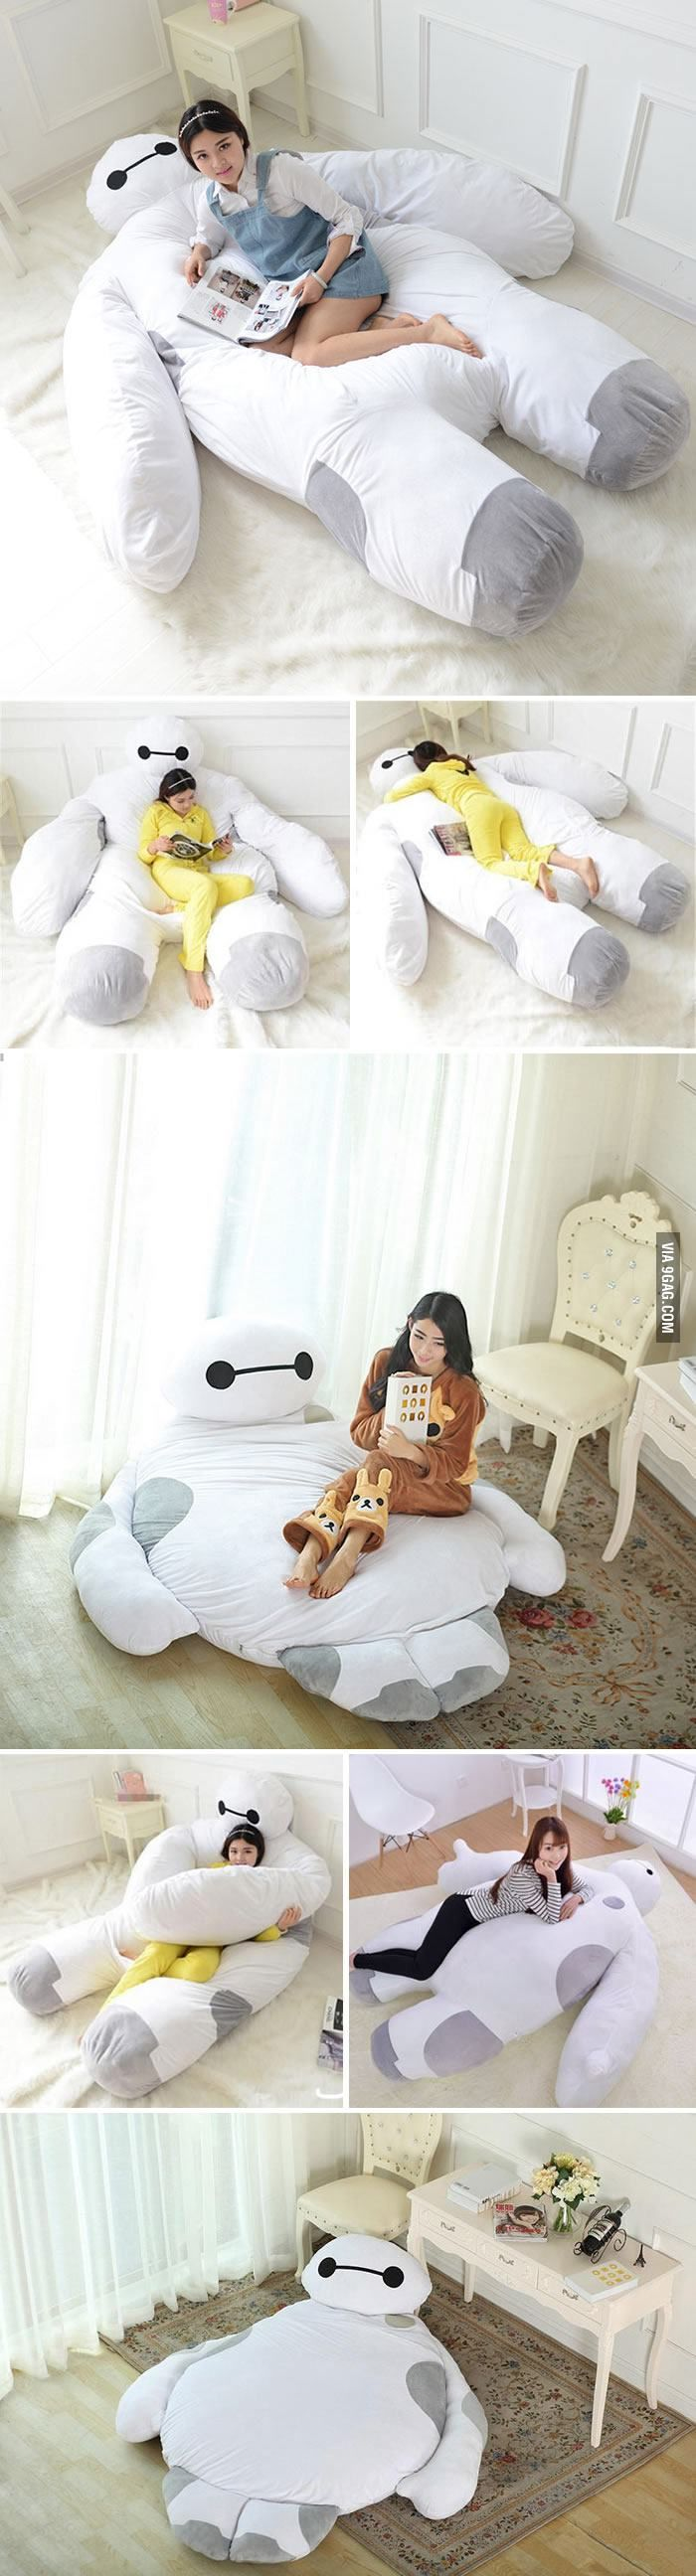 This Life Size Baymax Sofa Bed Is What I Need To Hug While I Sleep!